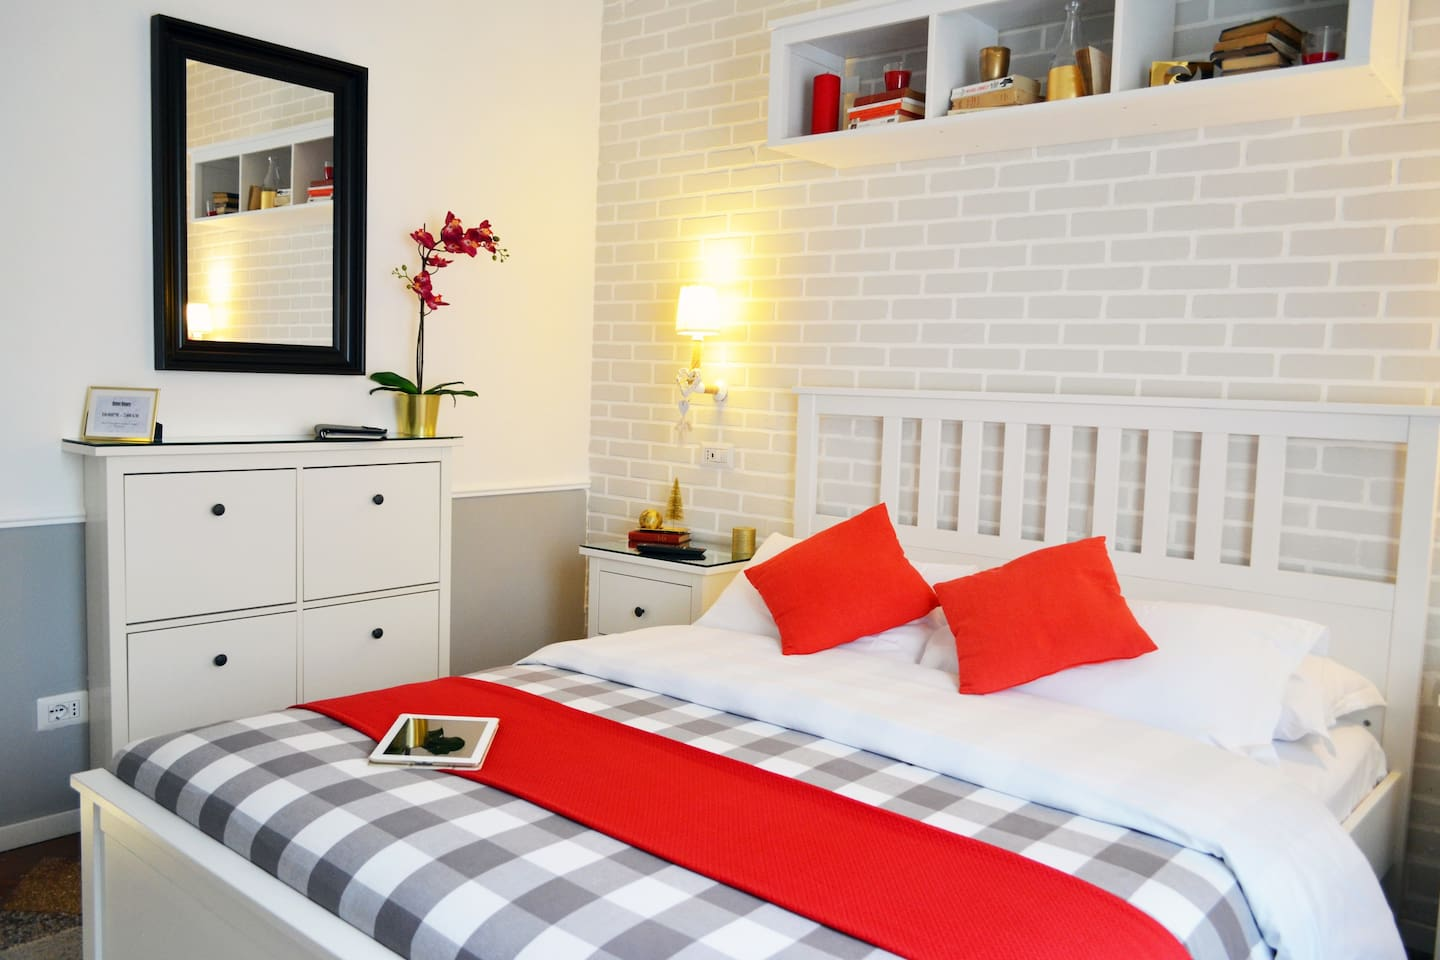 Free Wifi, Coffee machine, iron, iron table, bathroom, USB outlets on each side of the bed, A.C, umbrellas